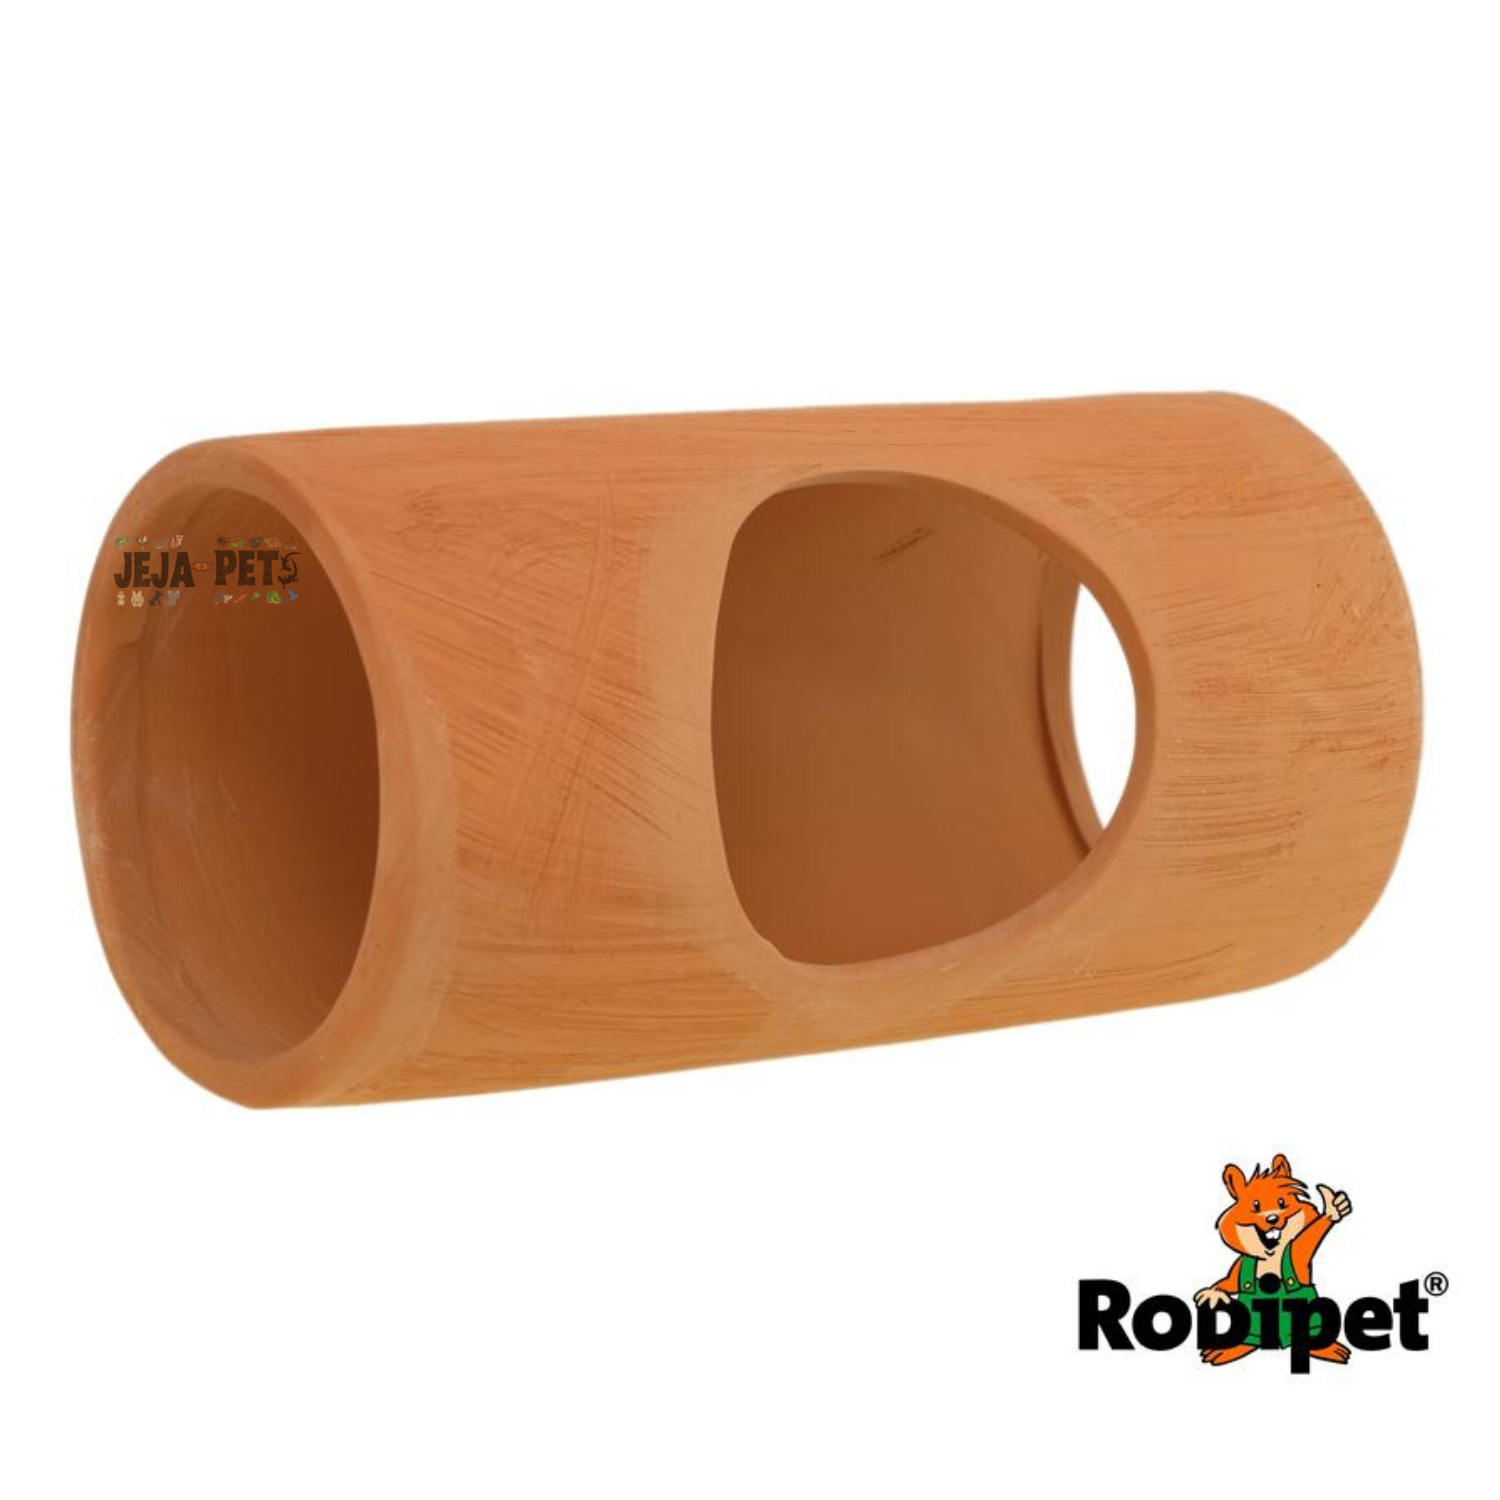 Rodipet EasyClean TERRA Ceramic Tube with Side Entrance - 20cm